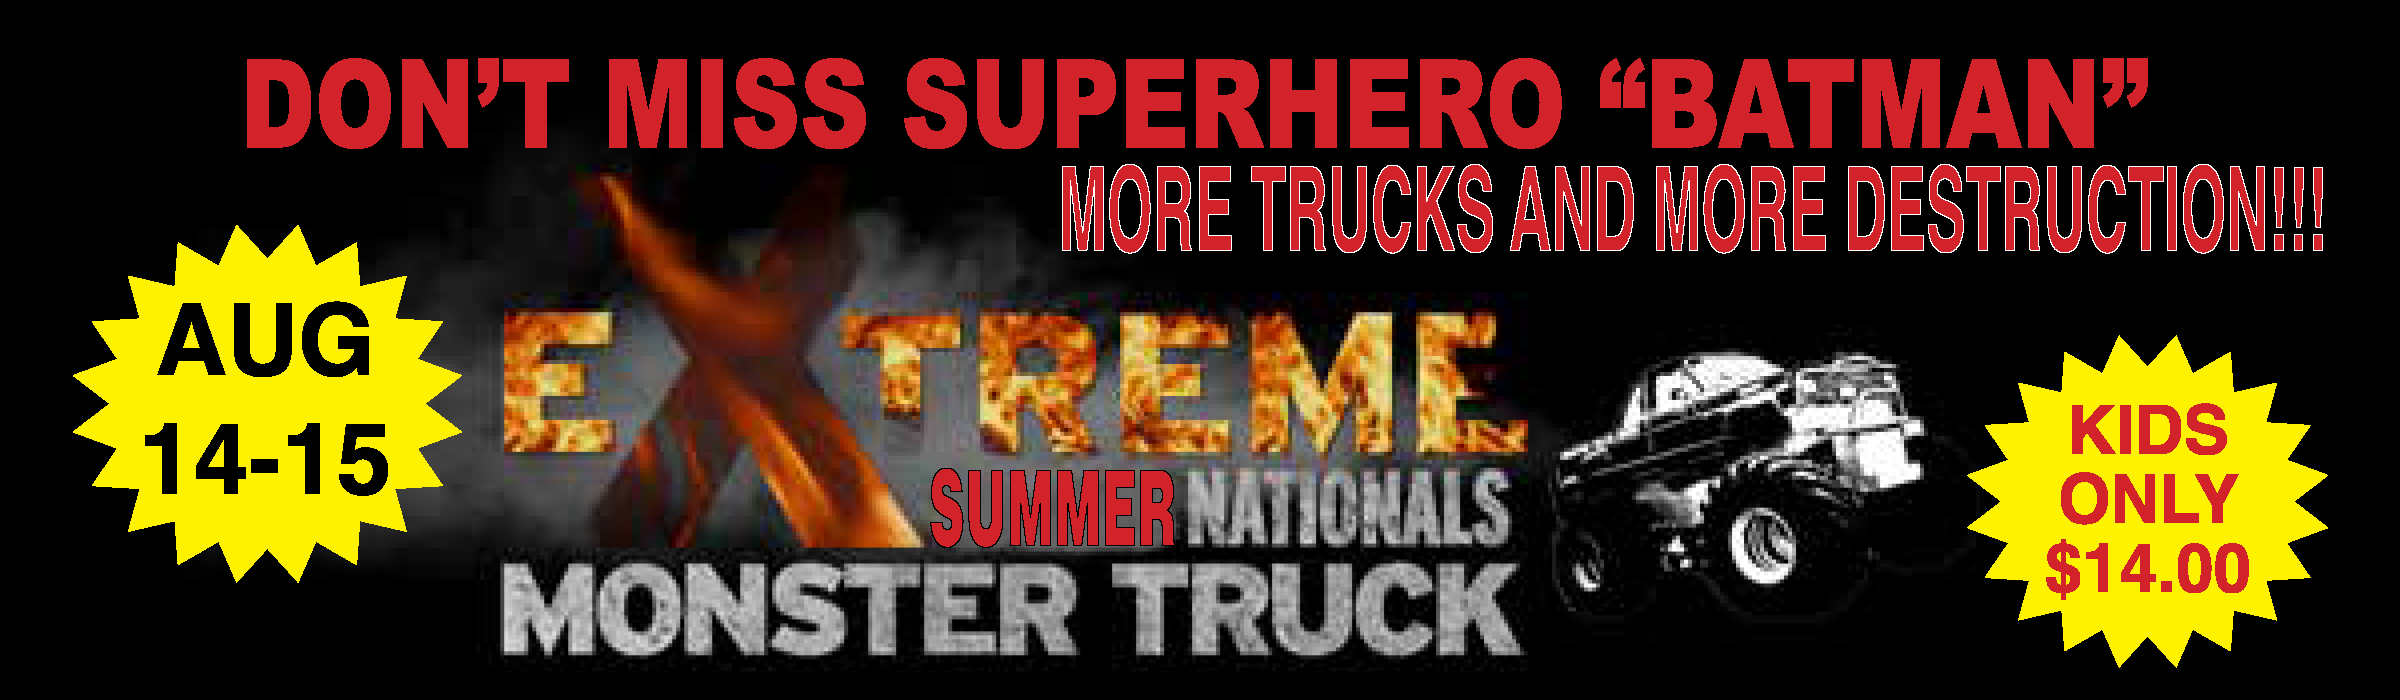 Tickets for MONSTER TRUCK SUMMER NATIONALS CHICKASHA OK.  2020 in CHICKASHA from ShowClix